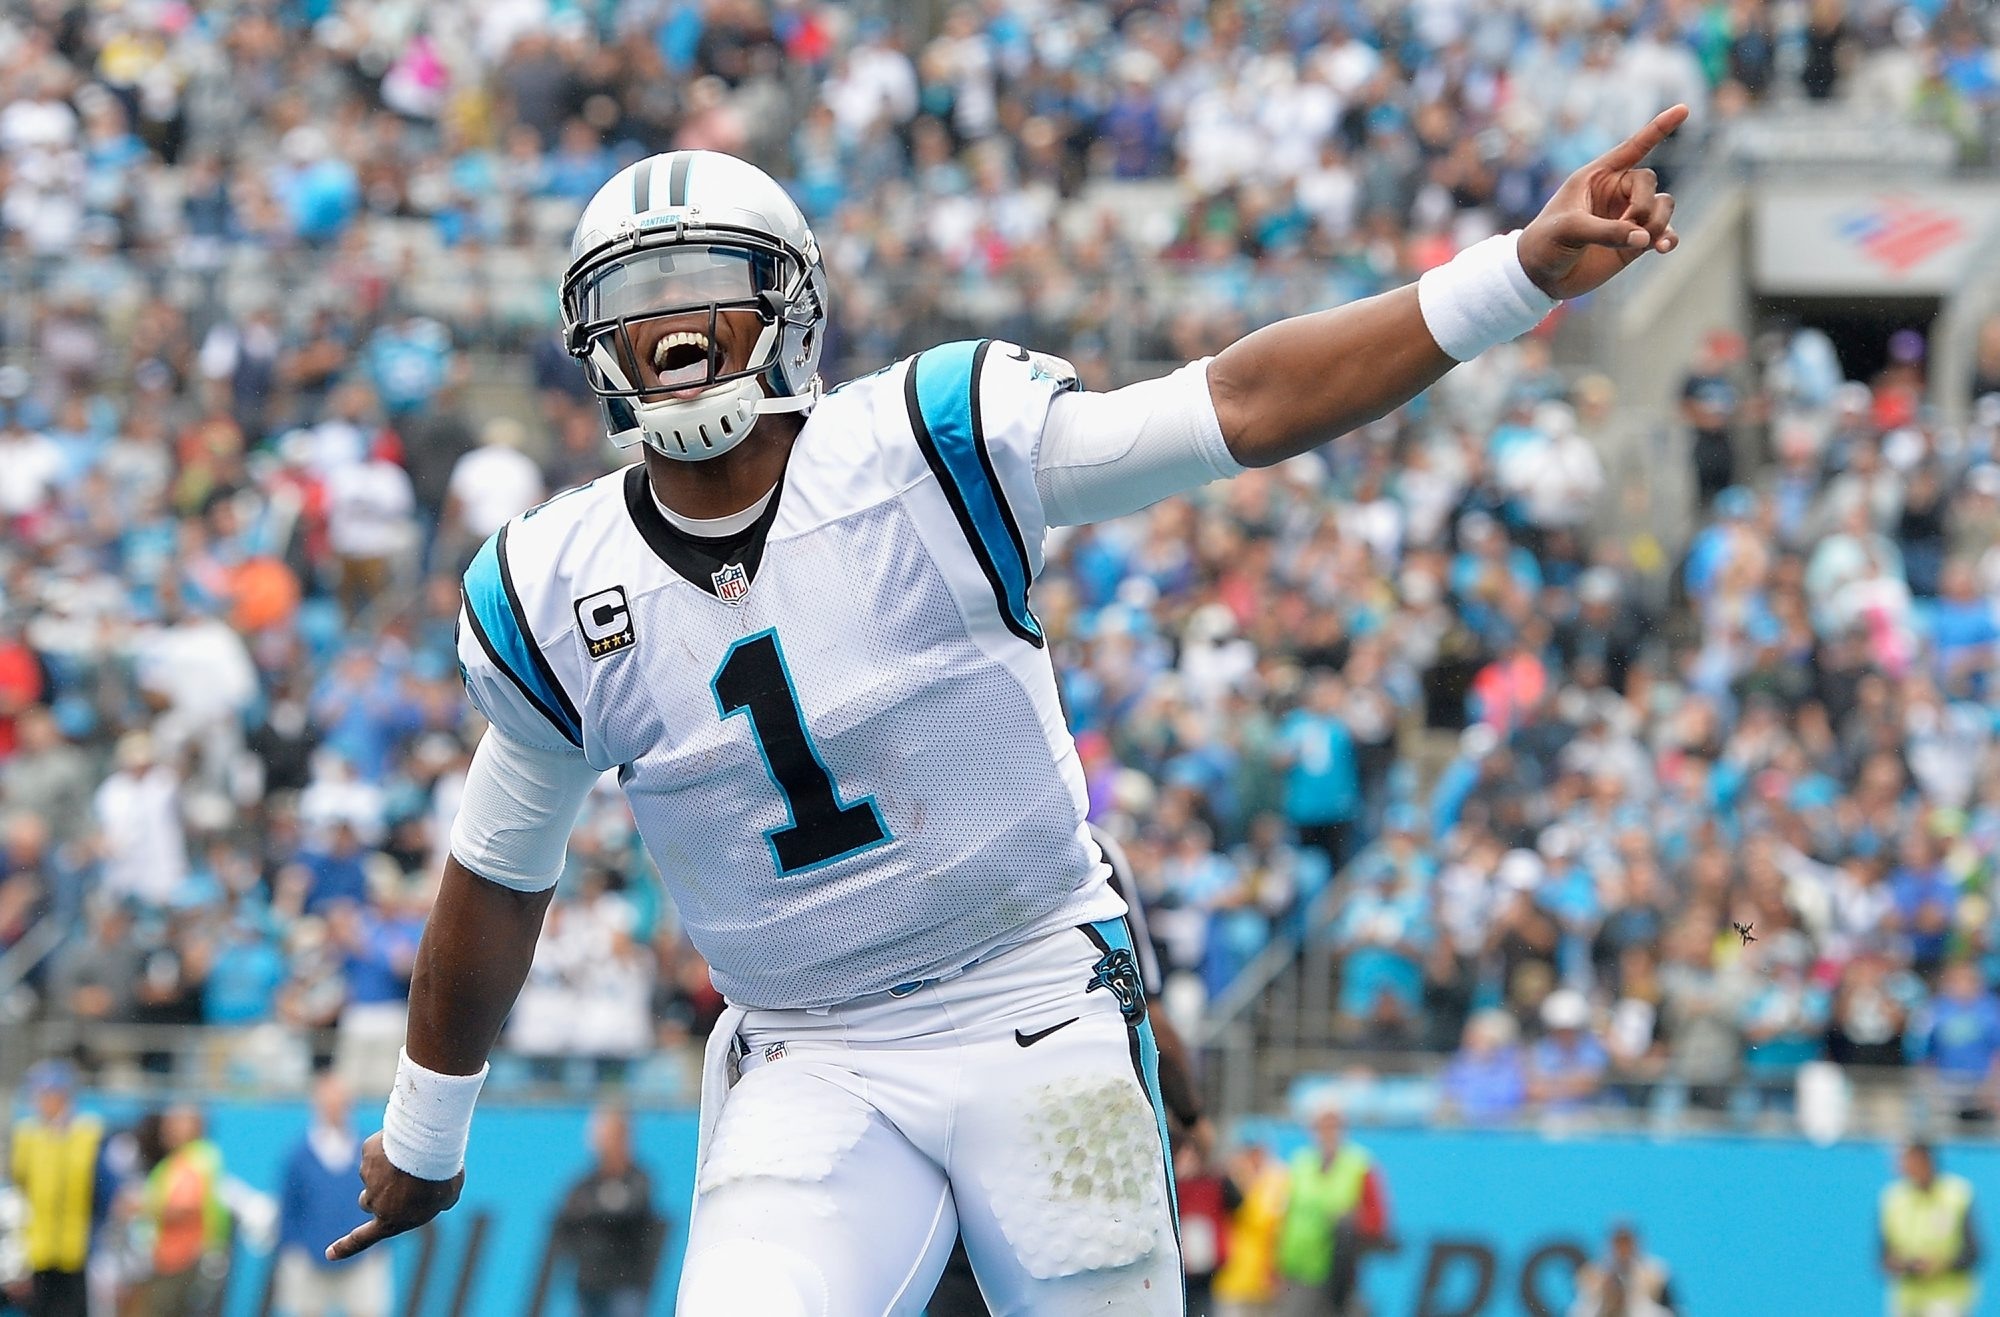 Cam Newton of the Panthers isn't afraid to enjoy himself and his success, which makes him an easy target for critics.